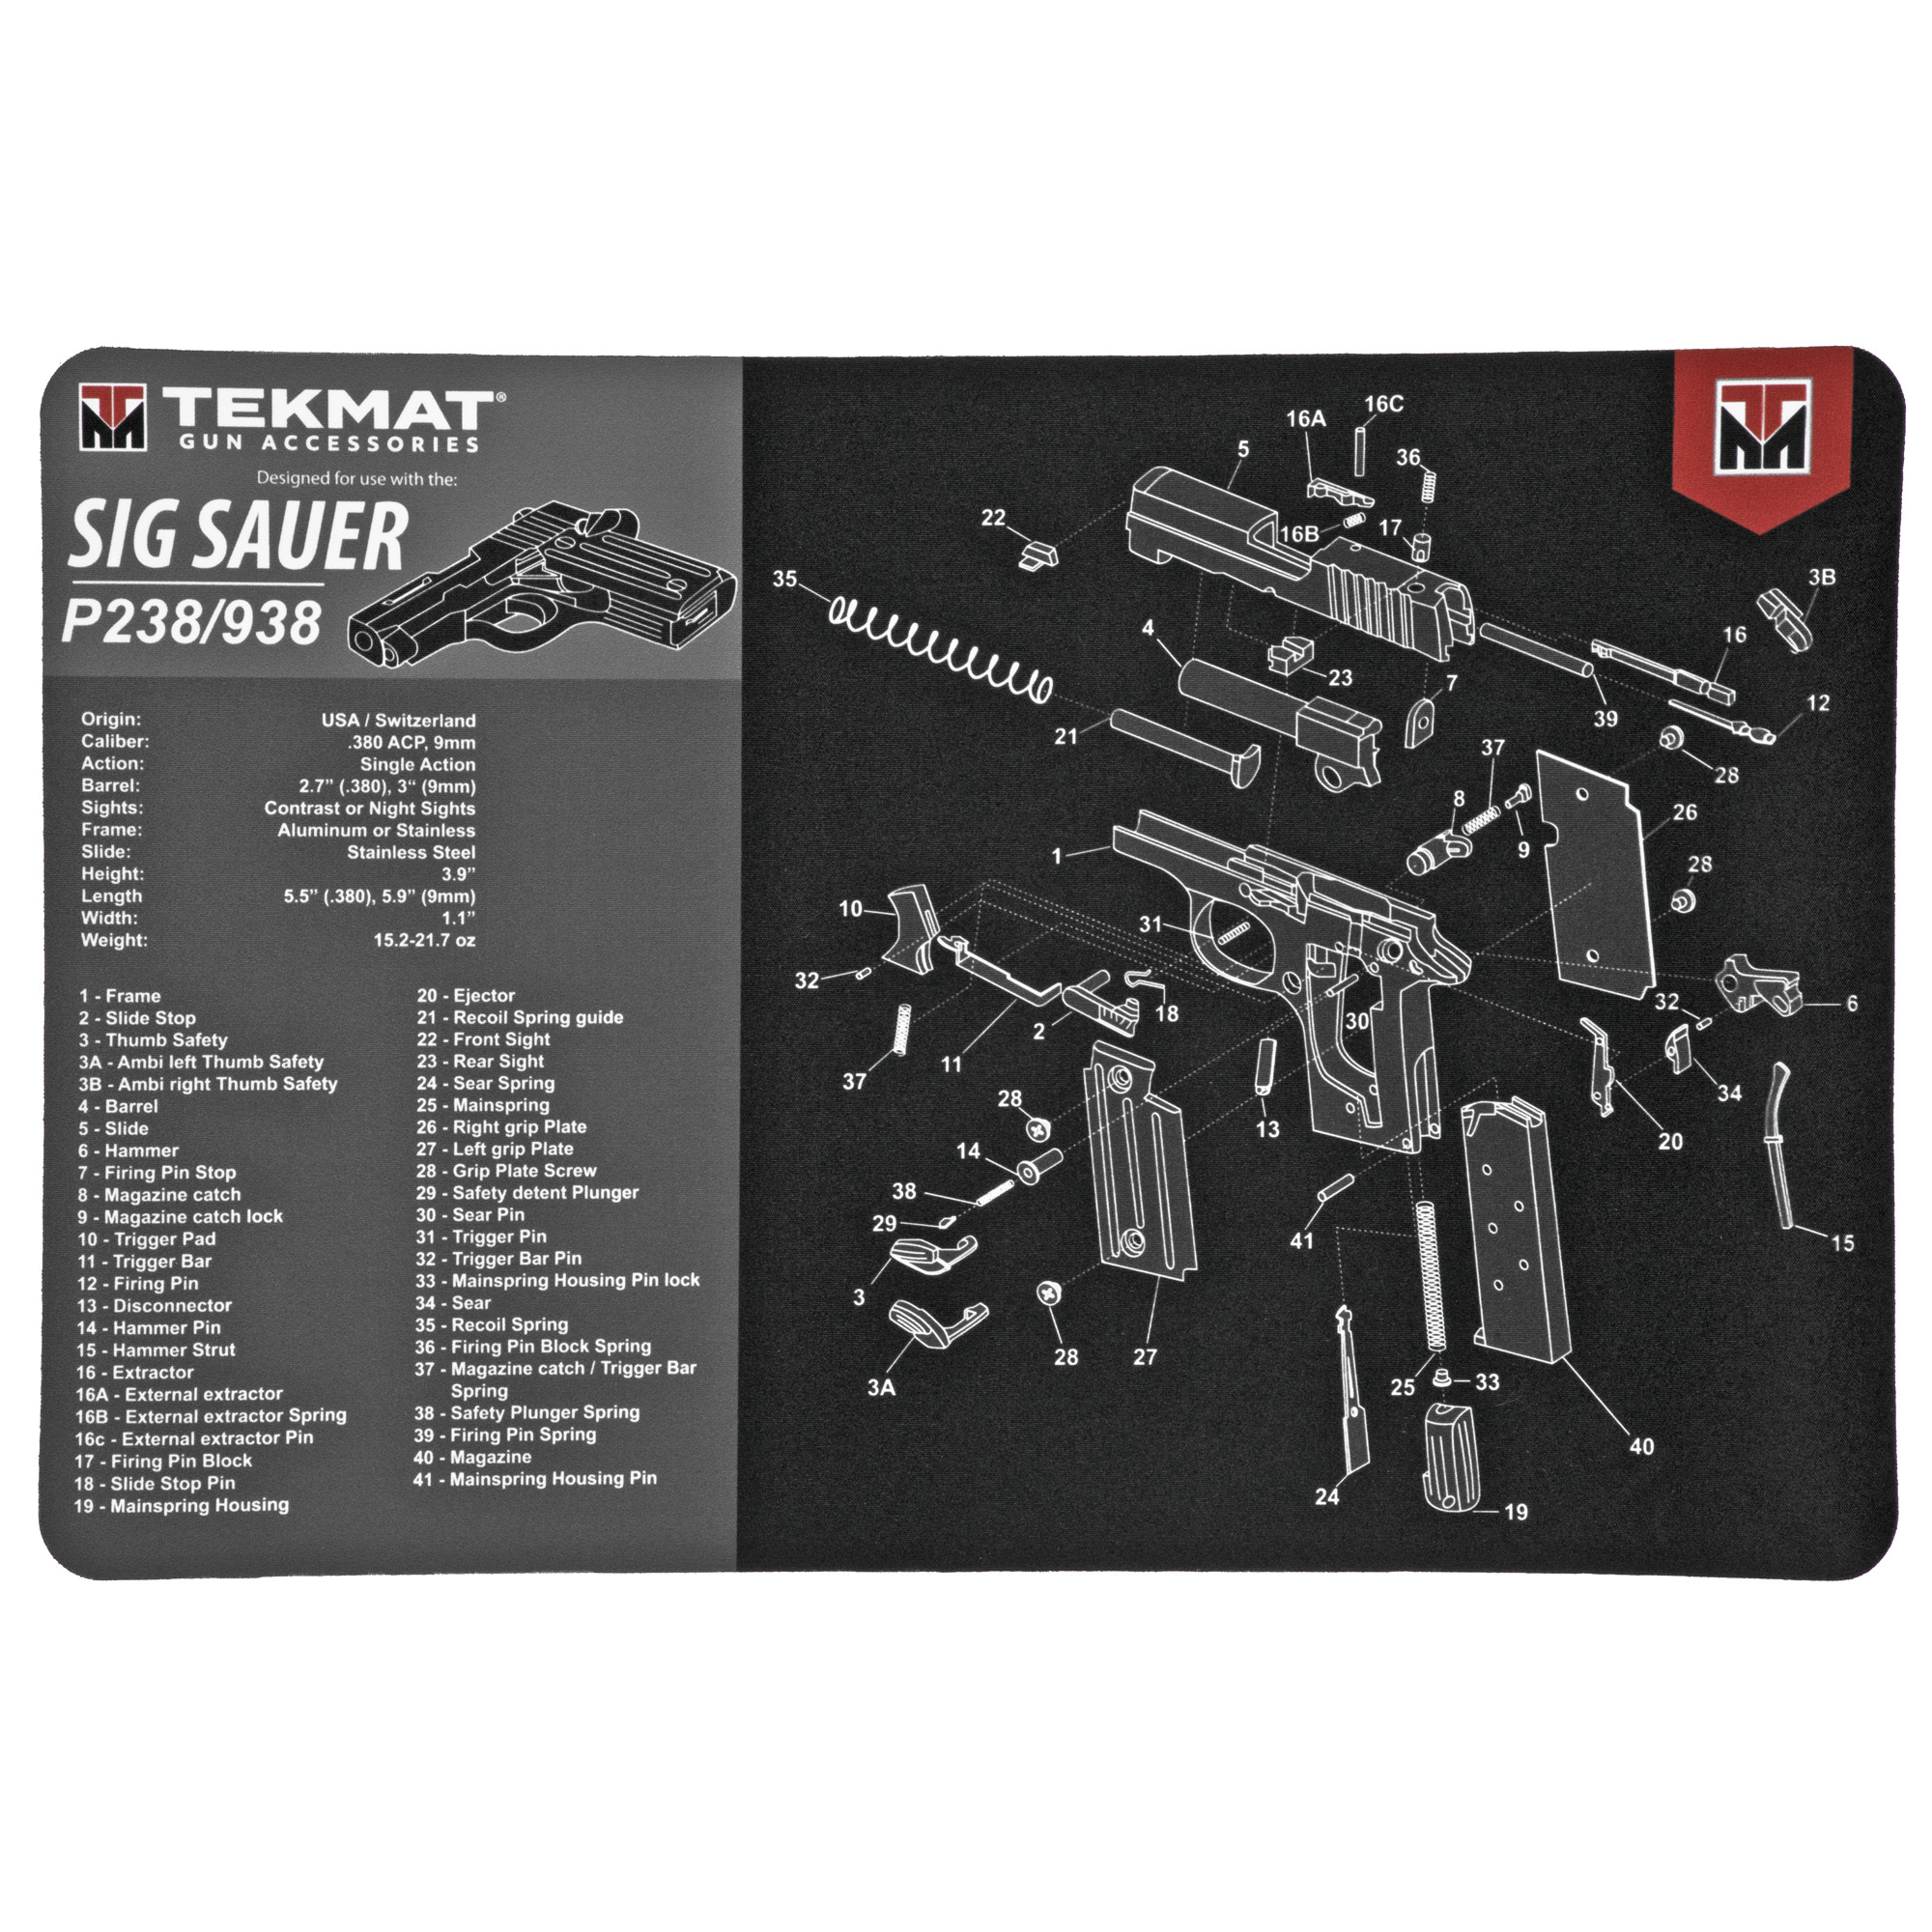 """The TekMat has a soft thermoplastic fiber surface that will protect your firearm and won't stain from grease and oil. The neoprene rubber substrate gives TekMat the padding you need to keep your gun"""" as well as your kitchen table"""" safe from dings and scratches. And to take it one step further"""" TekMat was designed with an exploded parts diagram of your firearm so you could take the gun apart to clean it"""" as well as put it back together without ever having to try and find the owner's manual. TekMat's use a dye-sublimation printing process which embeds the ink into the surface material so you don't have to worry about the printing coming off the mat."""